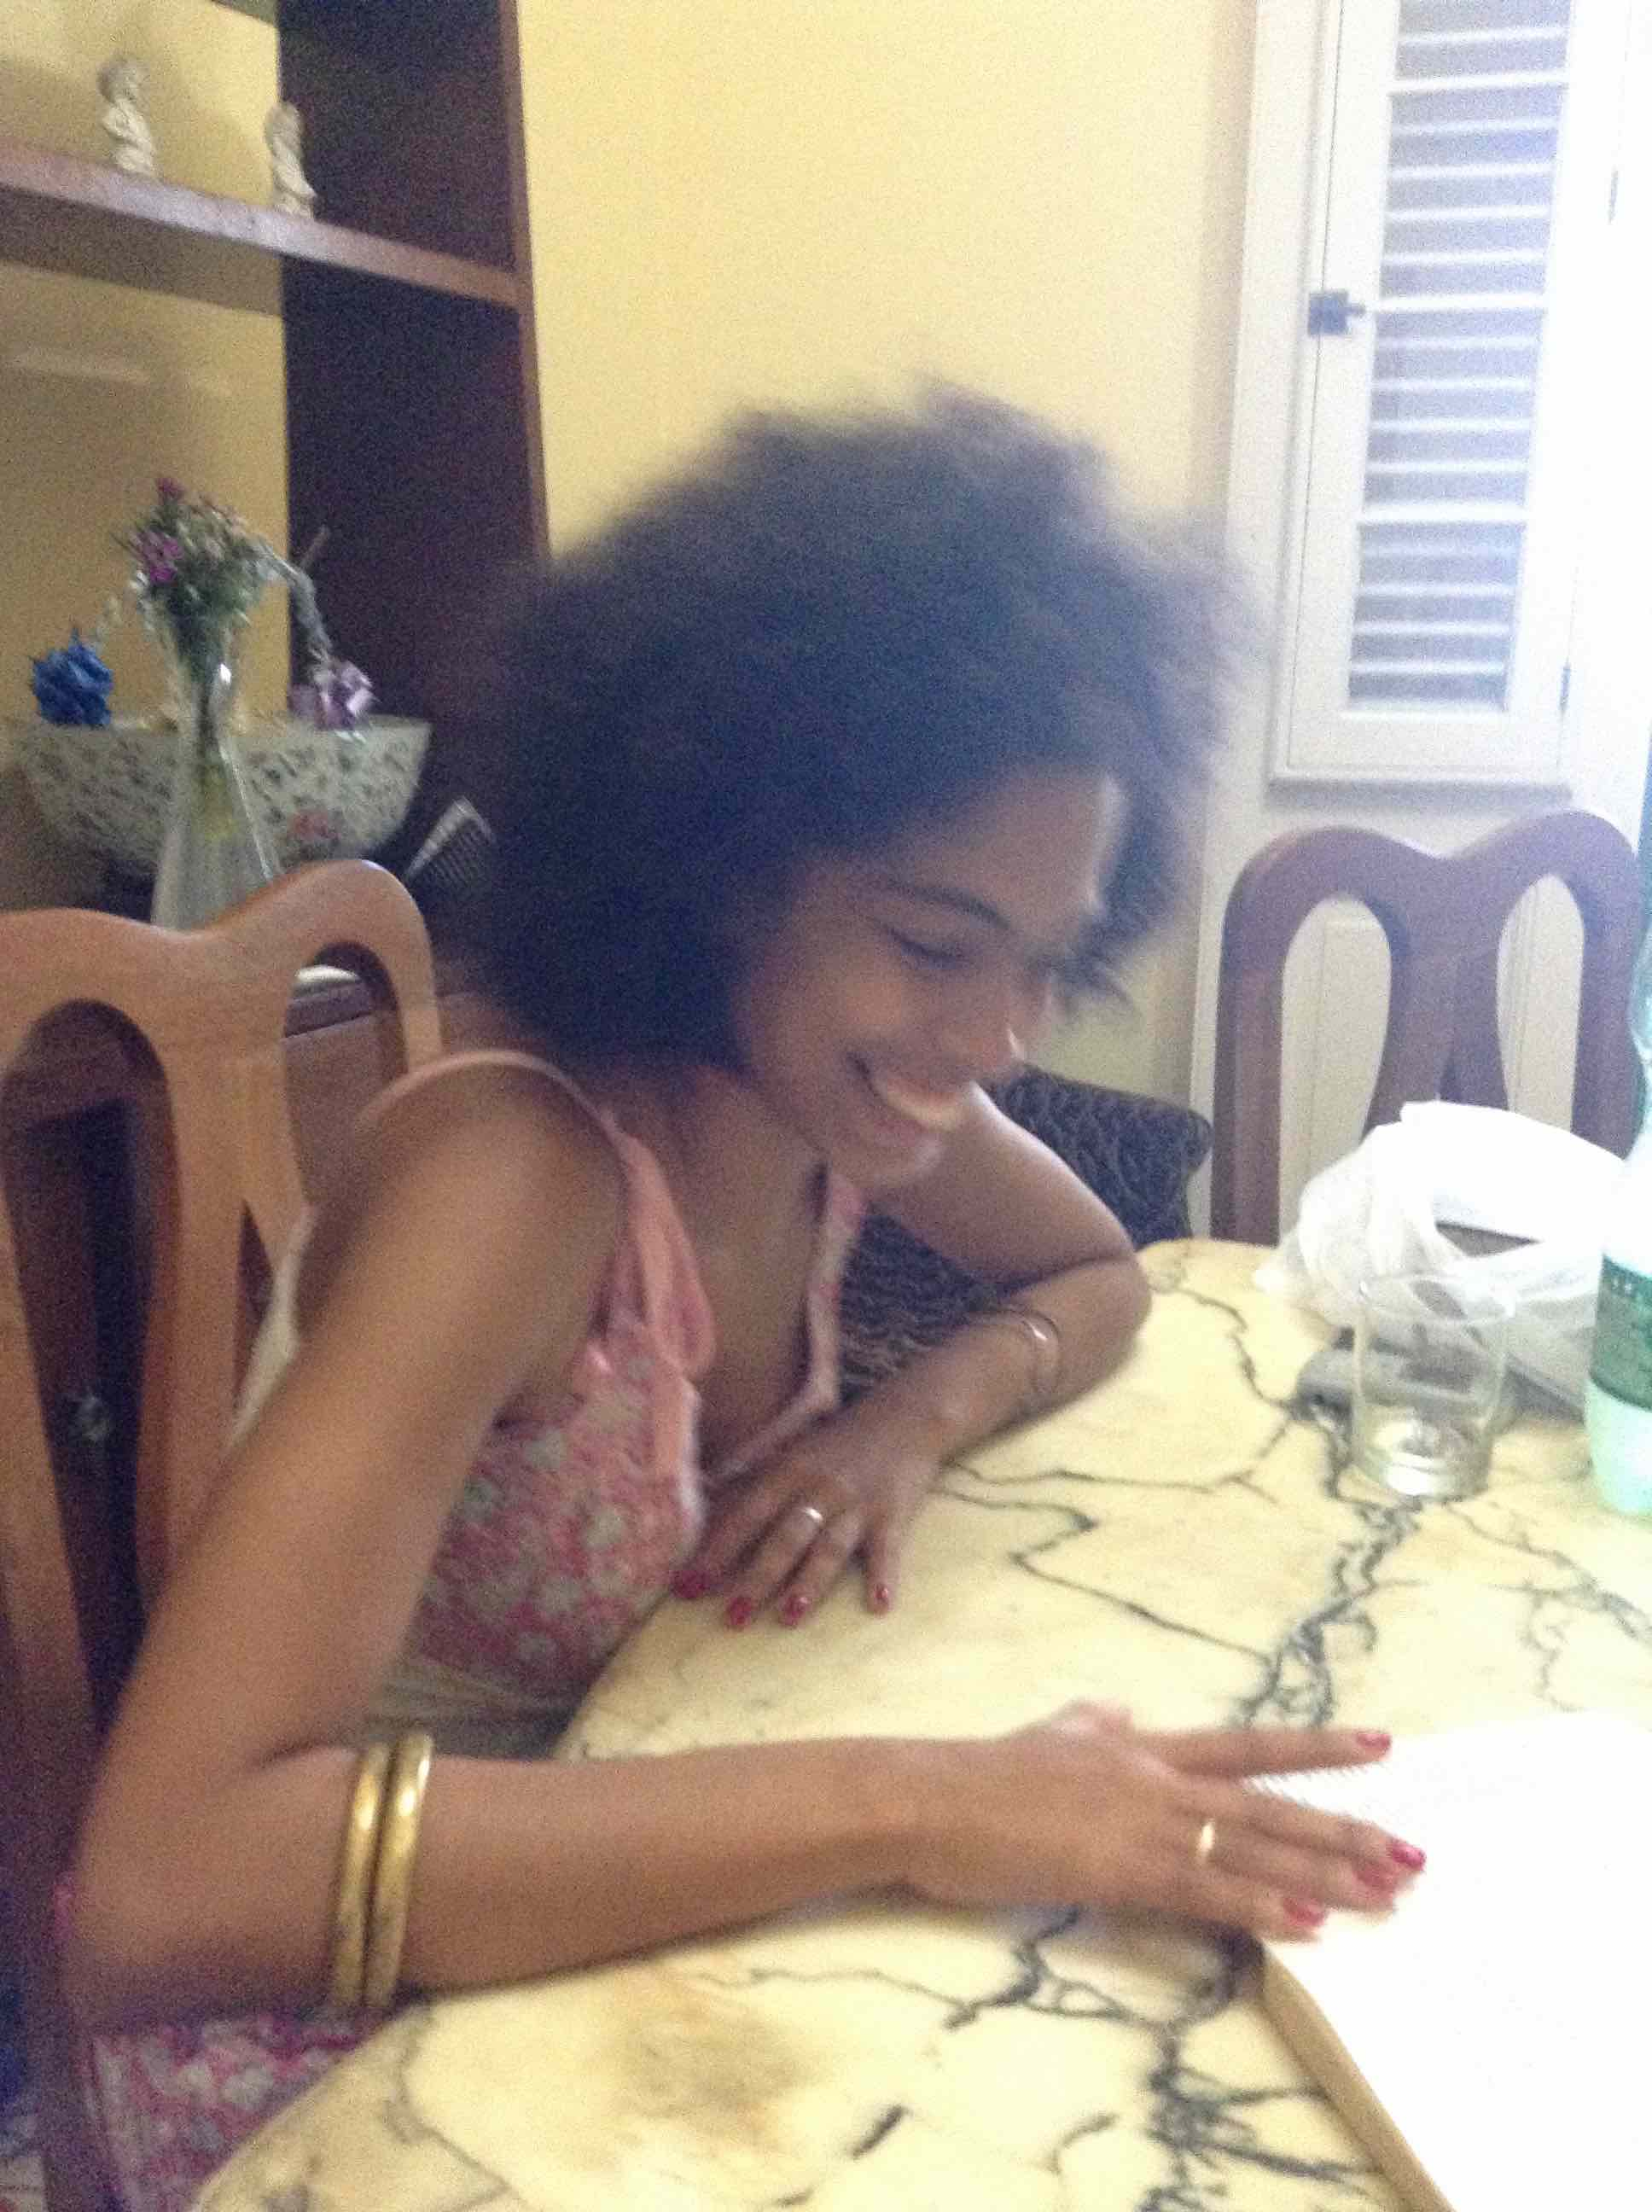 One of our Spanish tutors in Vedado, Cuba, where we rented a room for several weeks in 2014.